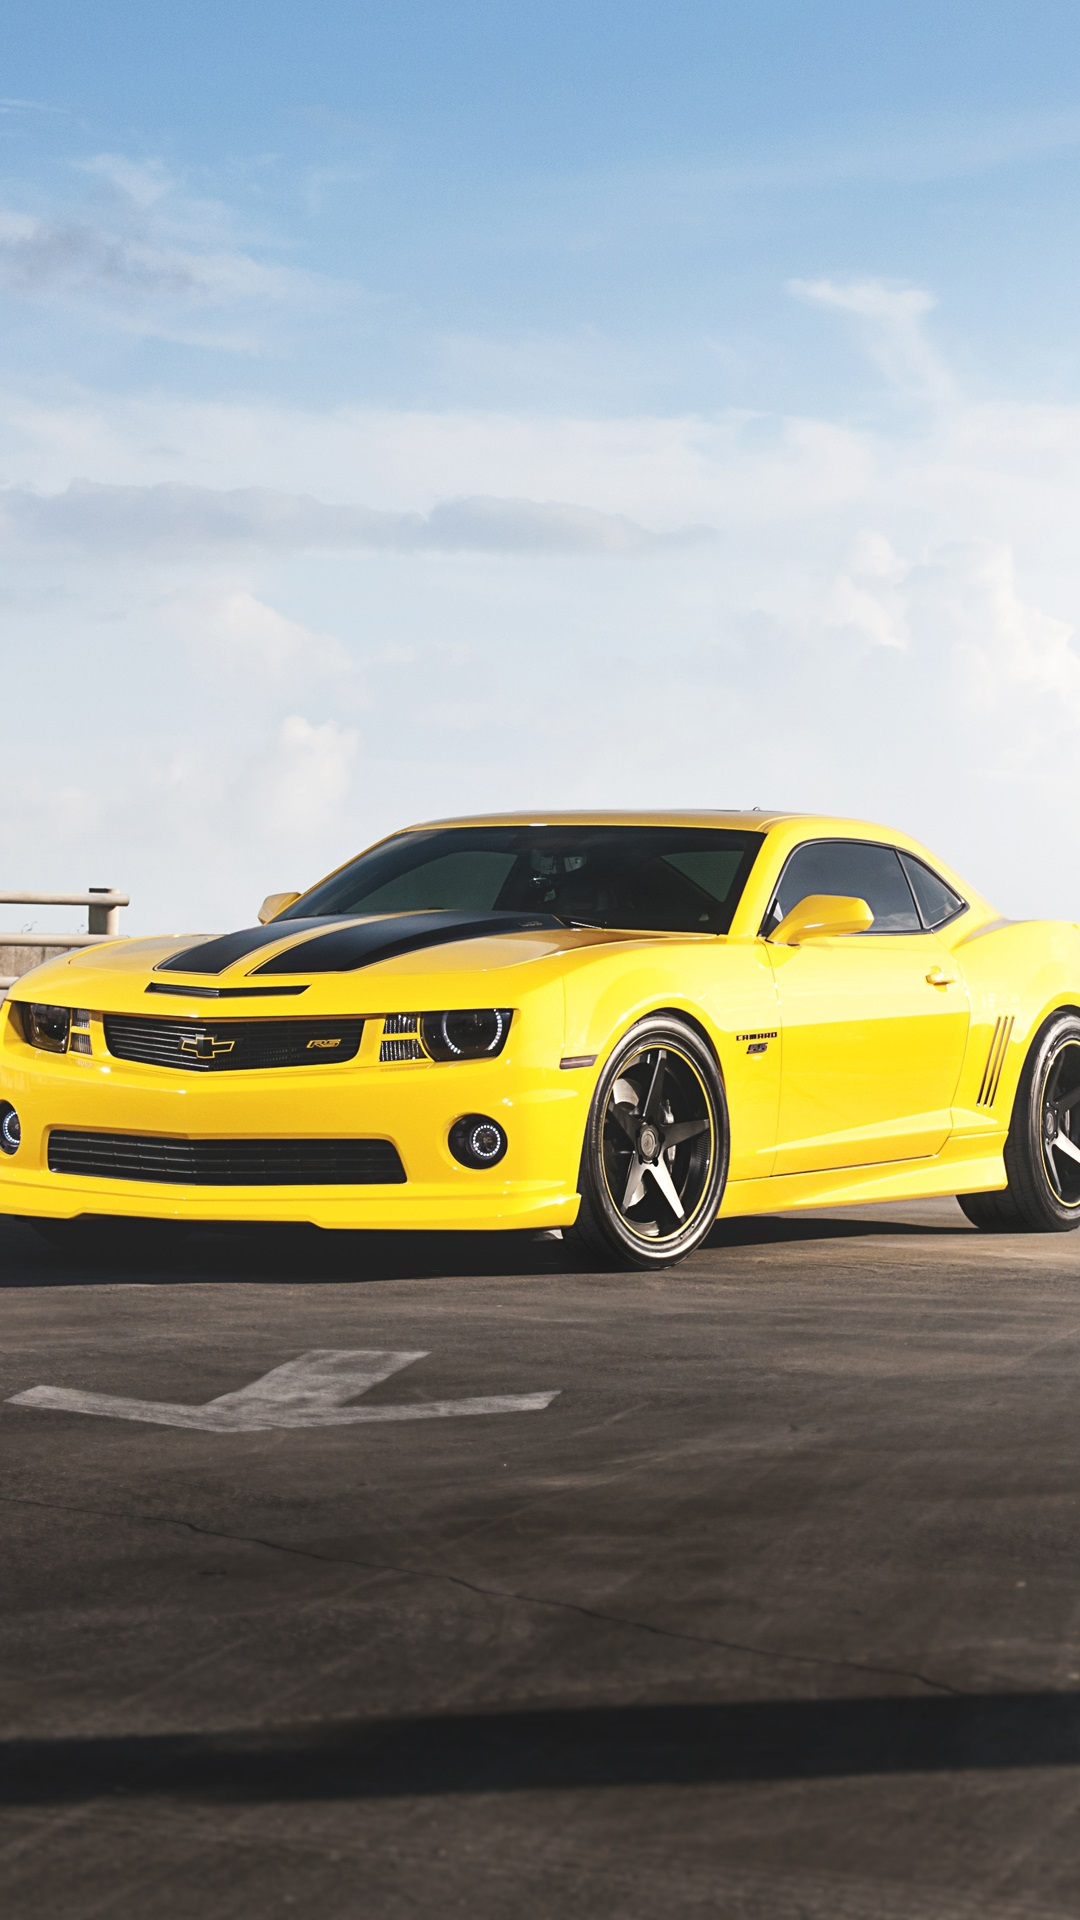 Chevrolet camaro rs coche amarillo iphone x 8 7 6 5 4 3gs - Iphone 6 car wallpaper hd ...